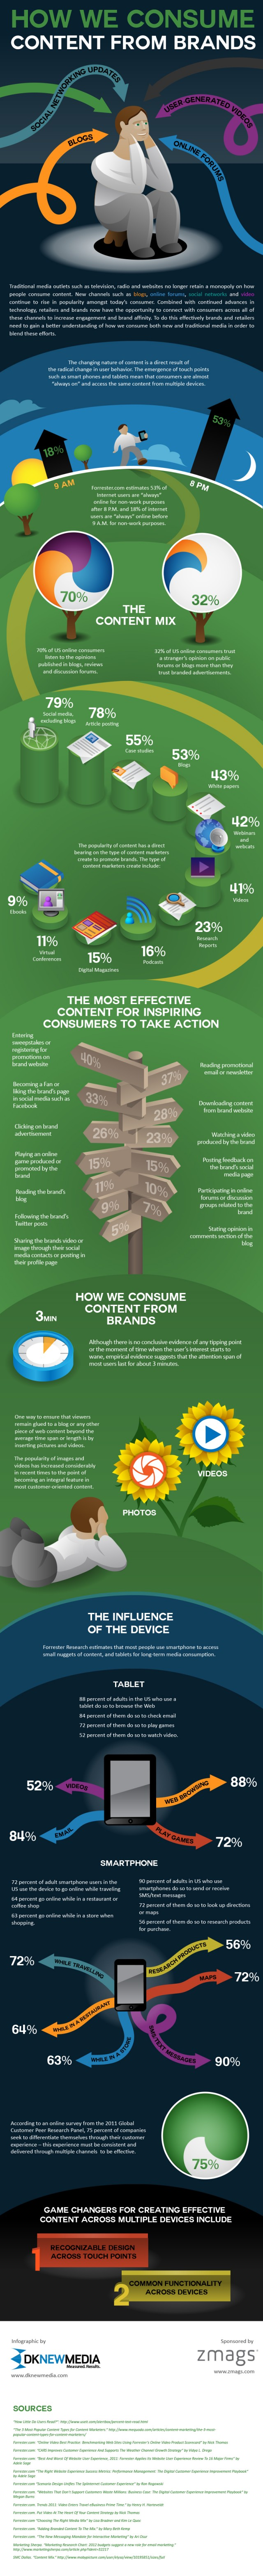 How people consume content from brands